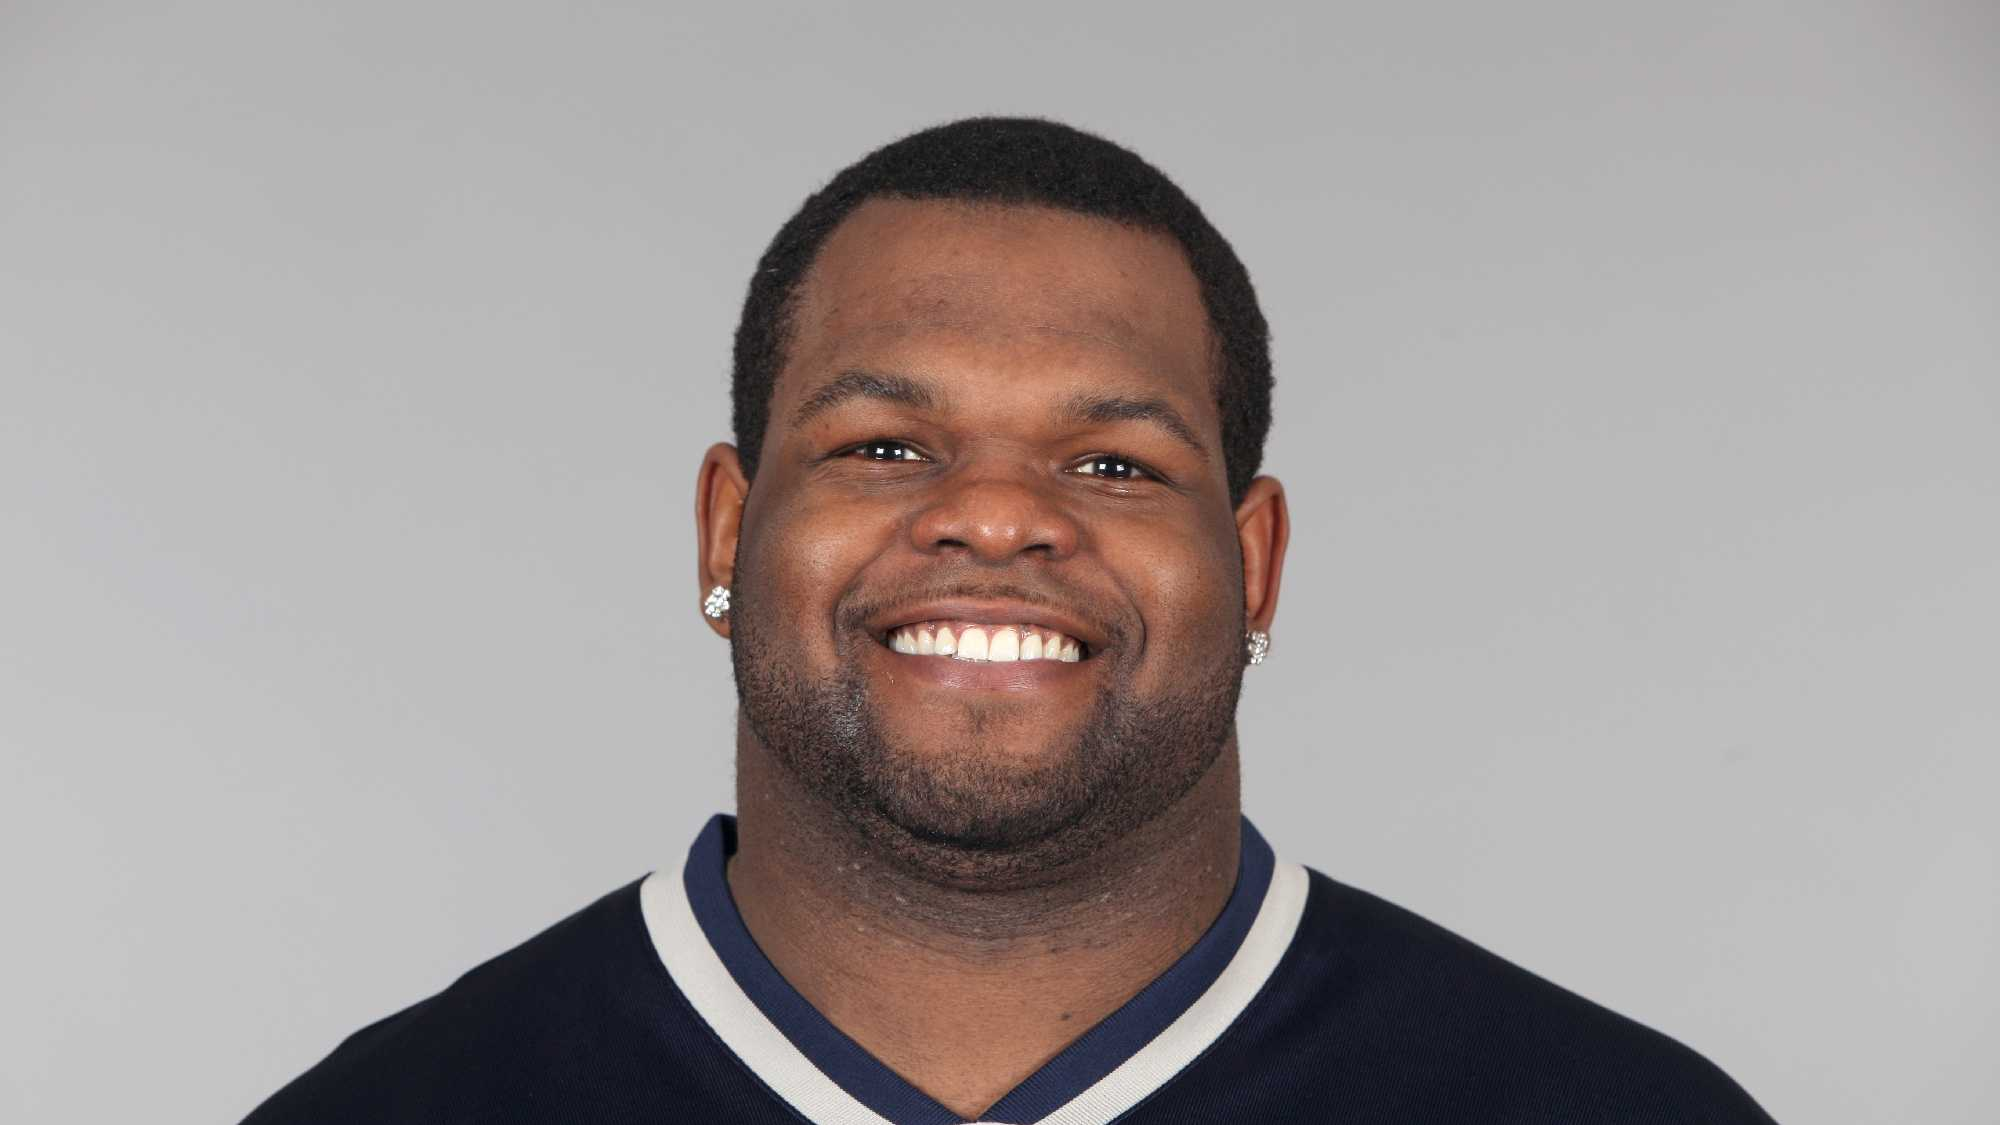 This is a 2010 photo of Ron Brace of the New England Patriots NFL football team. This image reflects the New England Patriots active roster as of Friday, April 30, 2010 when this image was taken.